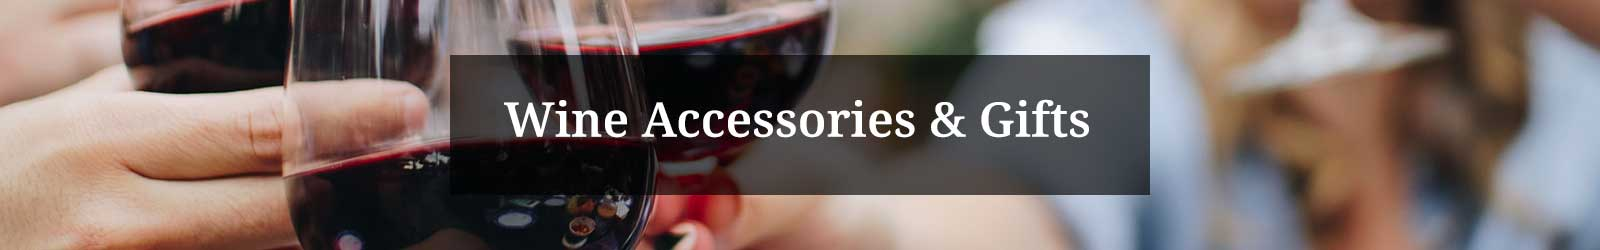 Wine Accessories and Gifts